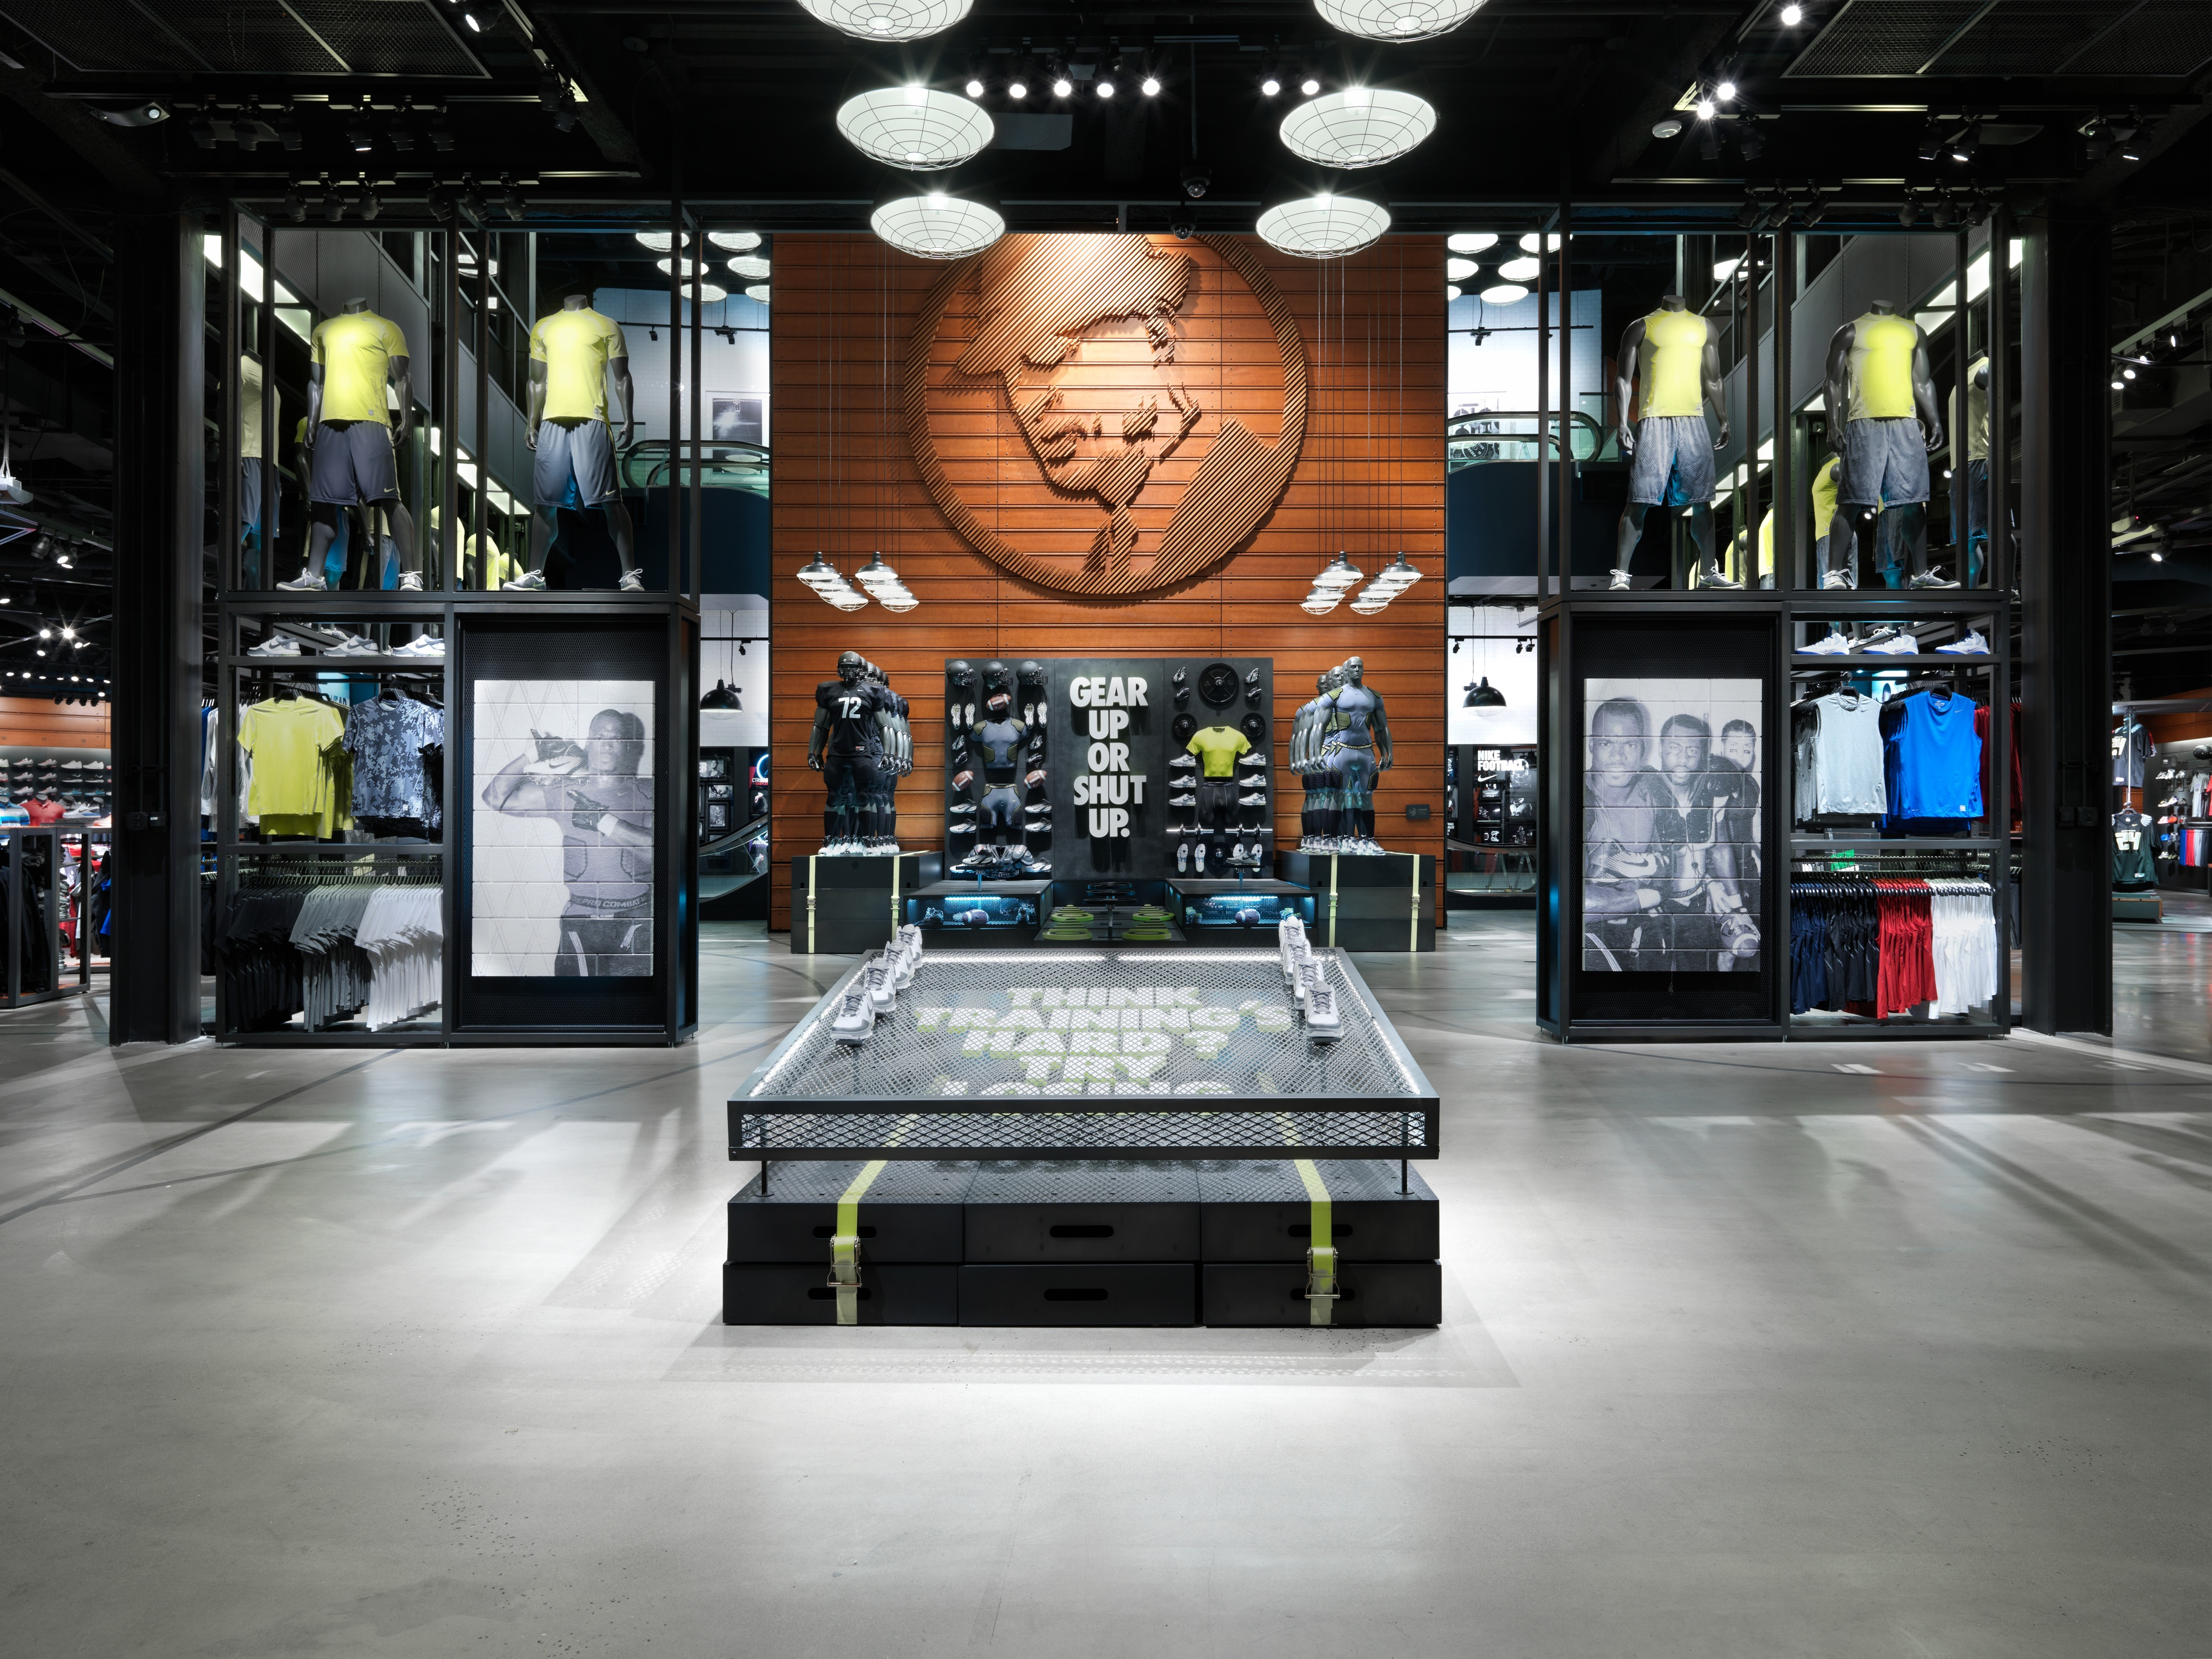 Nov 27,  · This Nike store (Las Vegas) is in the top of its game, and it should serve as the flagship store for all Nike stores. They stock the latest and greatest of all of Nike's superior products in stock, and if they don't have it in stock, the employees will go above and beyond the call of duty to assist you with your Nike product needs.4/4(90).